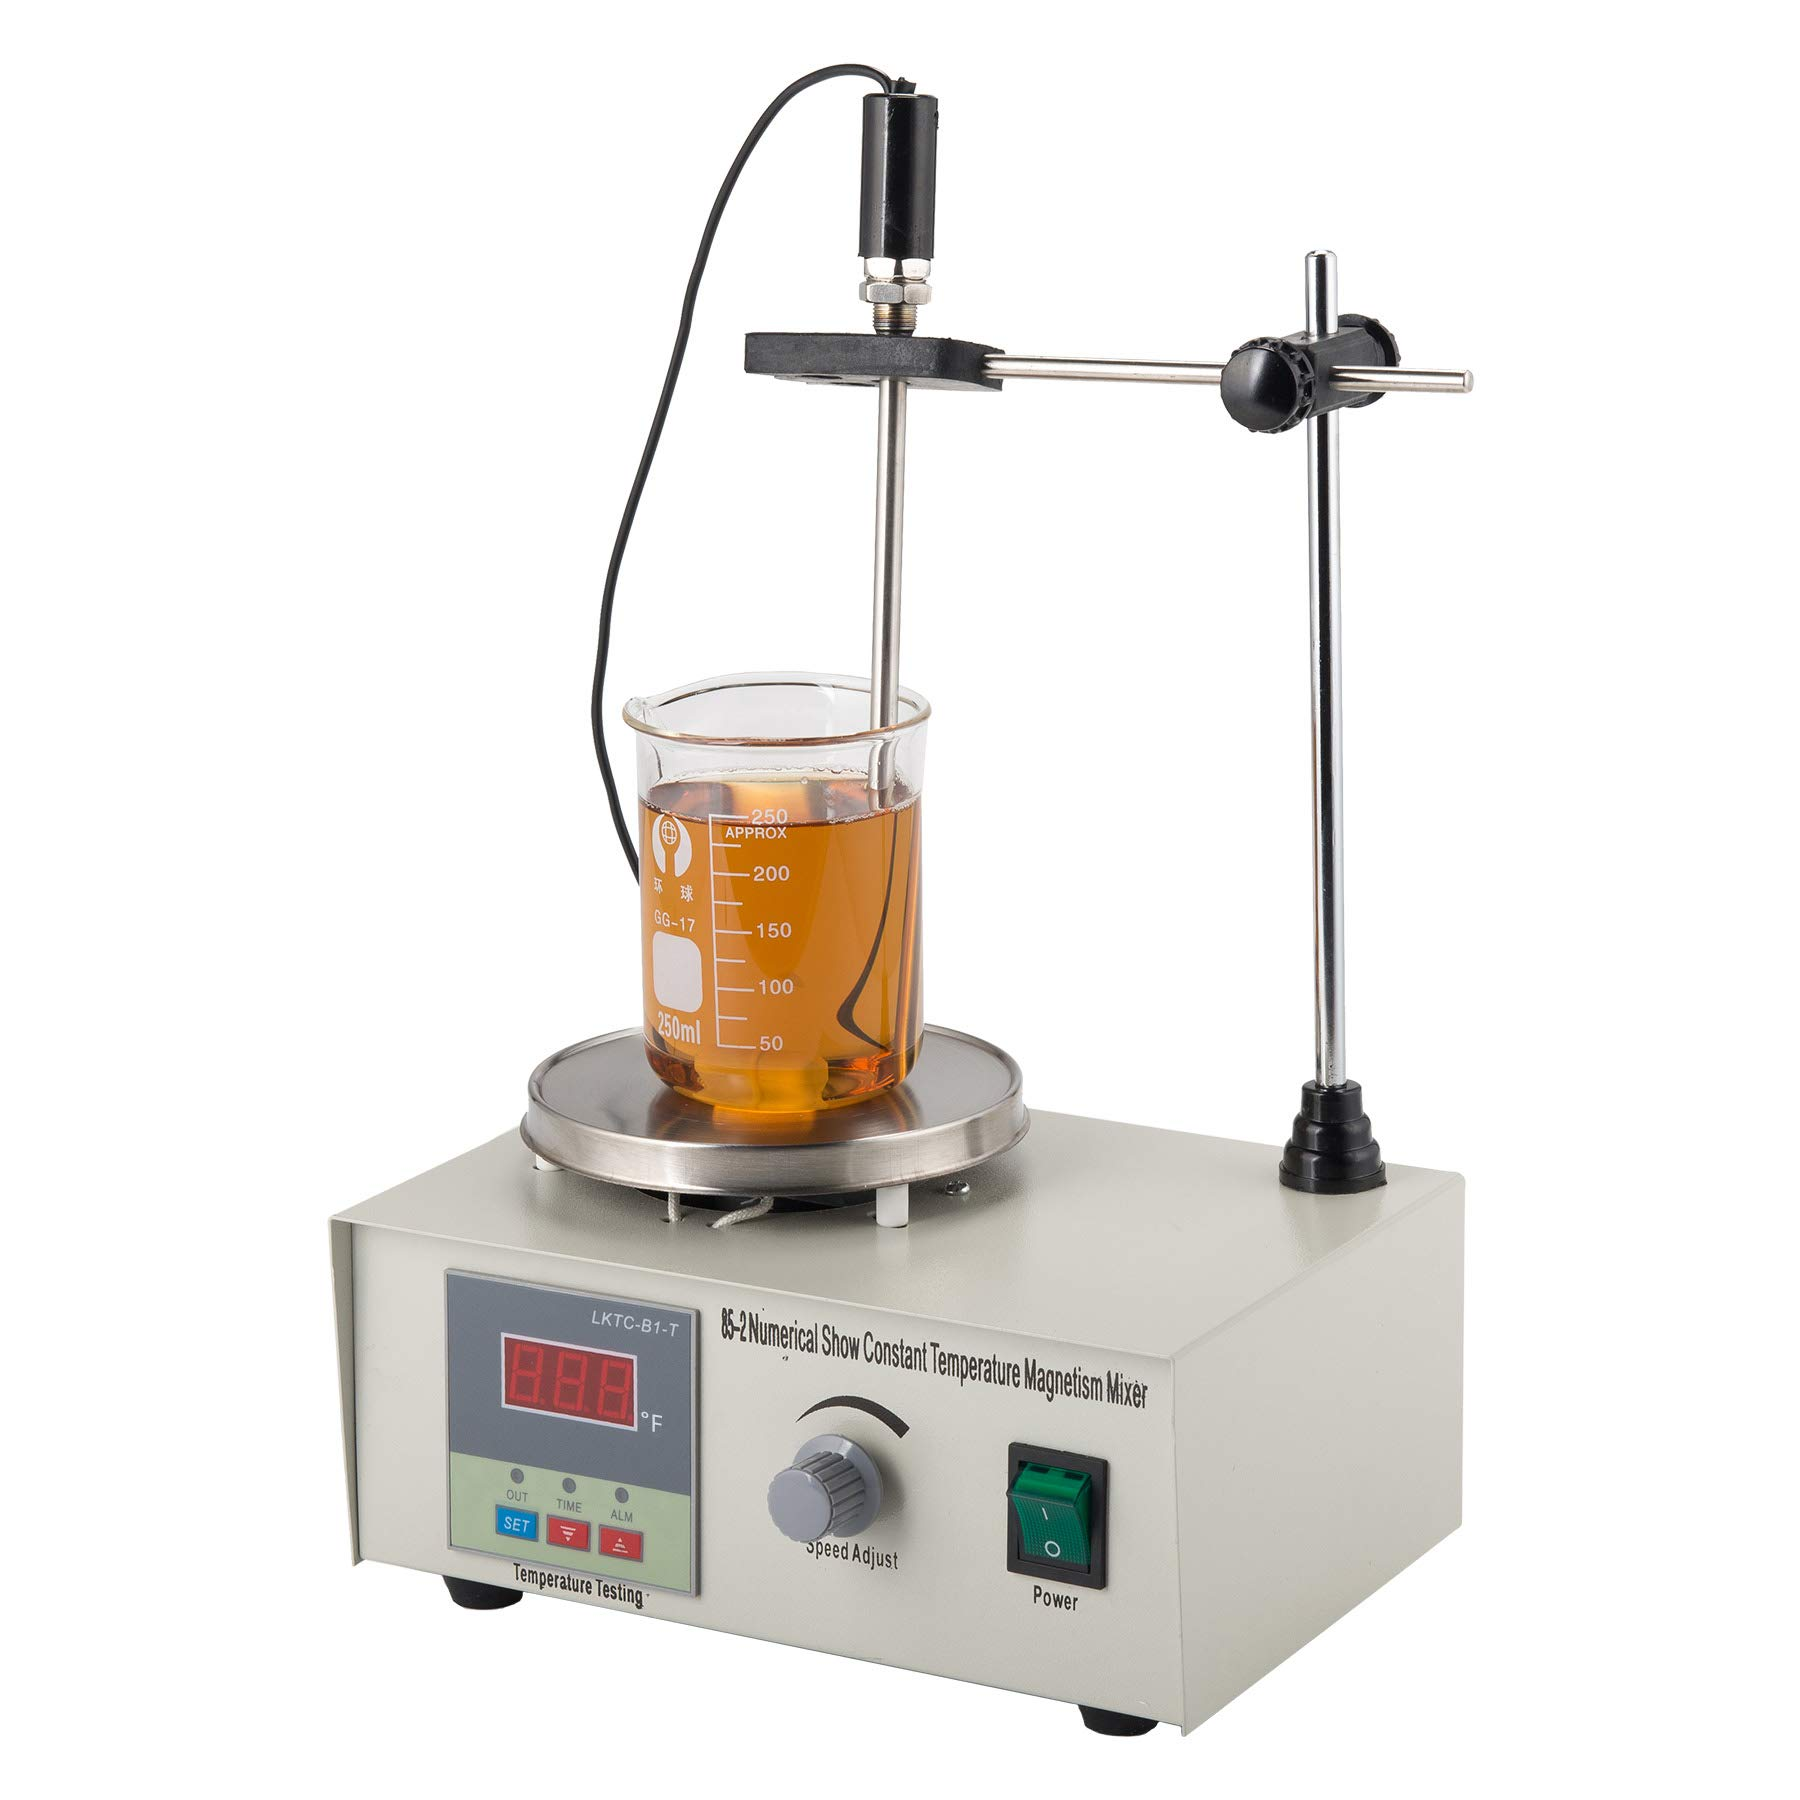 CO-Z Magnetic Stirrer Mixer Lab Mixer Magnetic Spinner Hotplate with Heating Plate 85-2 Digital Magnetic Mixer, 300W, 1000ml by CO-Z